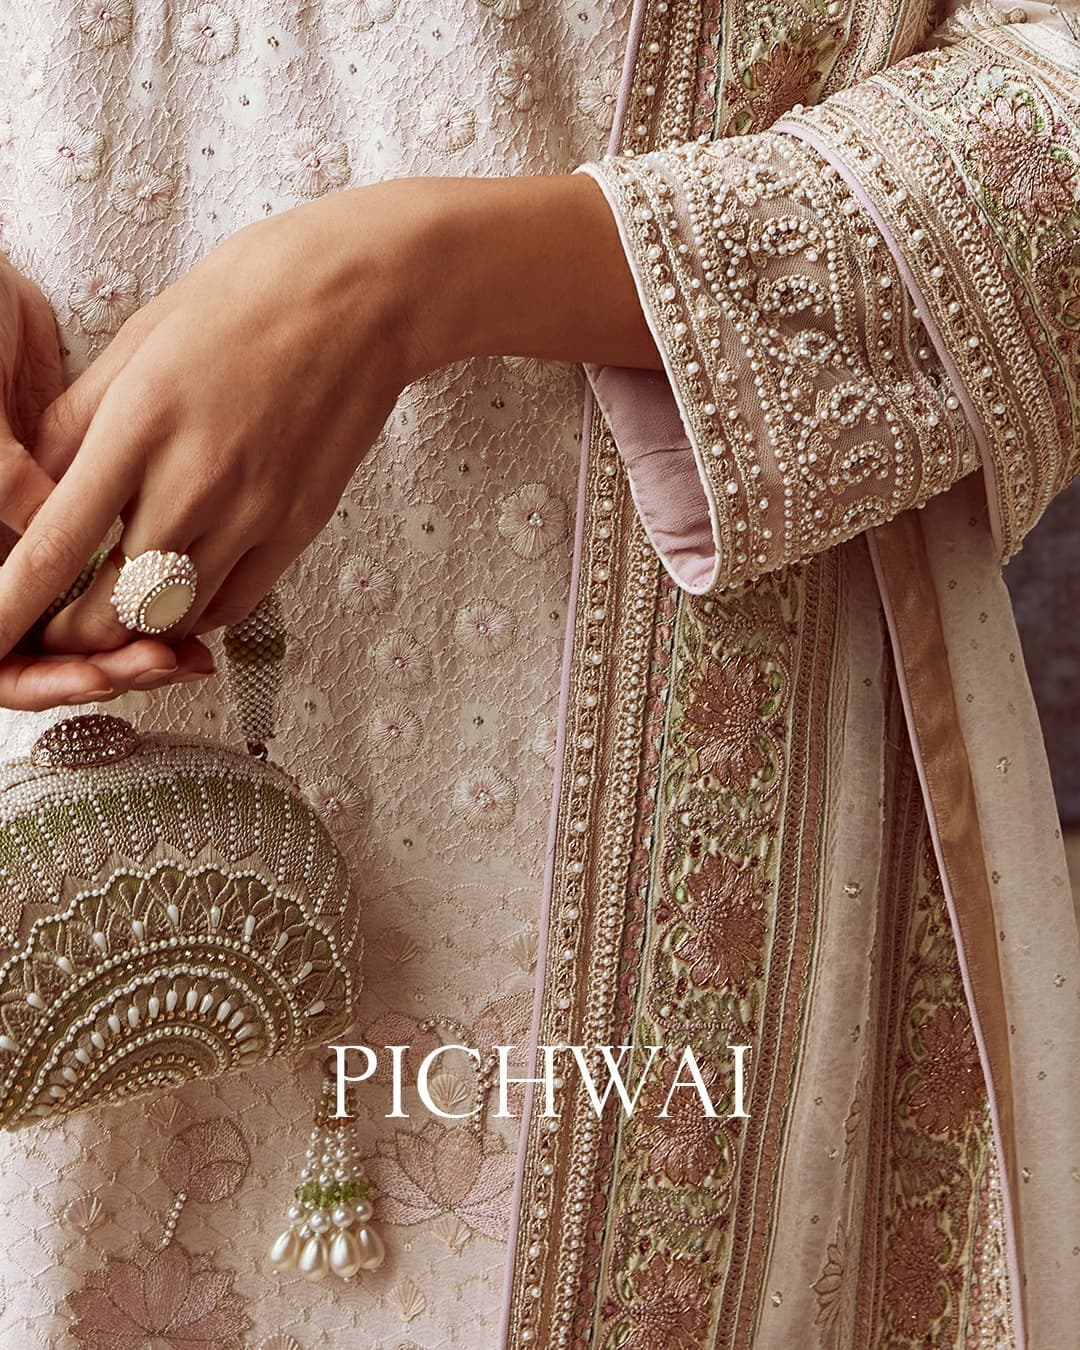 Sonali is wearing 18 kali ivory-beige and light-pink lehenga. Embellished with pichwai motifs the lehenga features hand embroidered pearls and resham detailing. Paired with a low-cut matching blouse and a satin organza dupatta. 2021-09-21